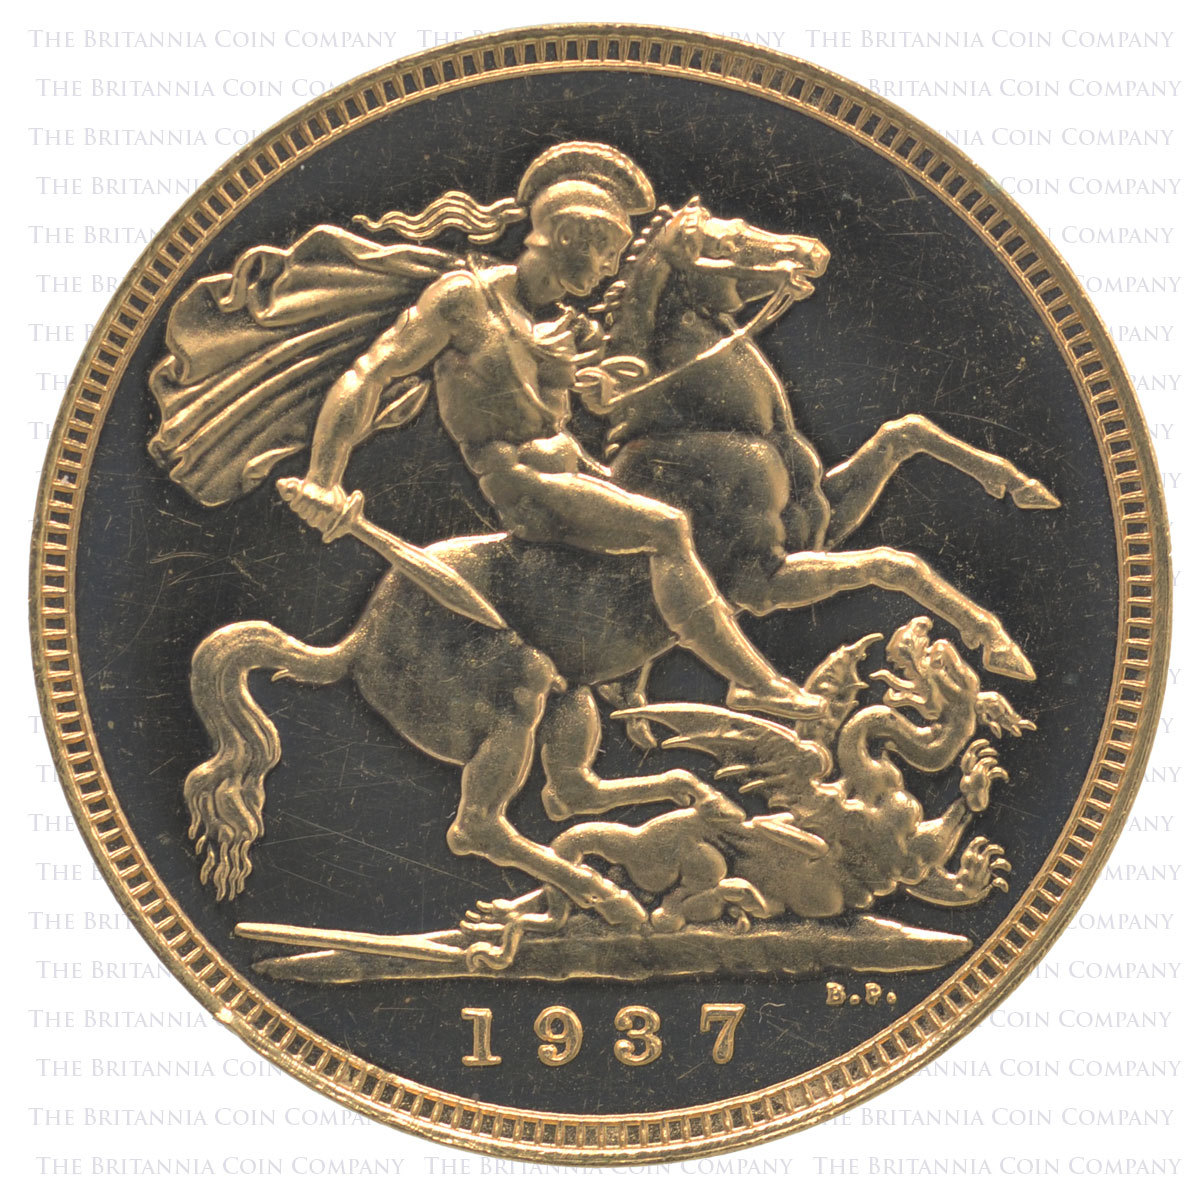 1937 Proof Sovereign